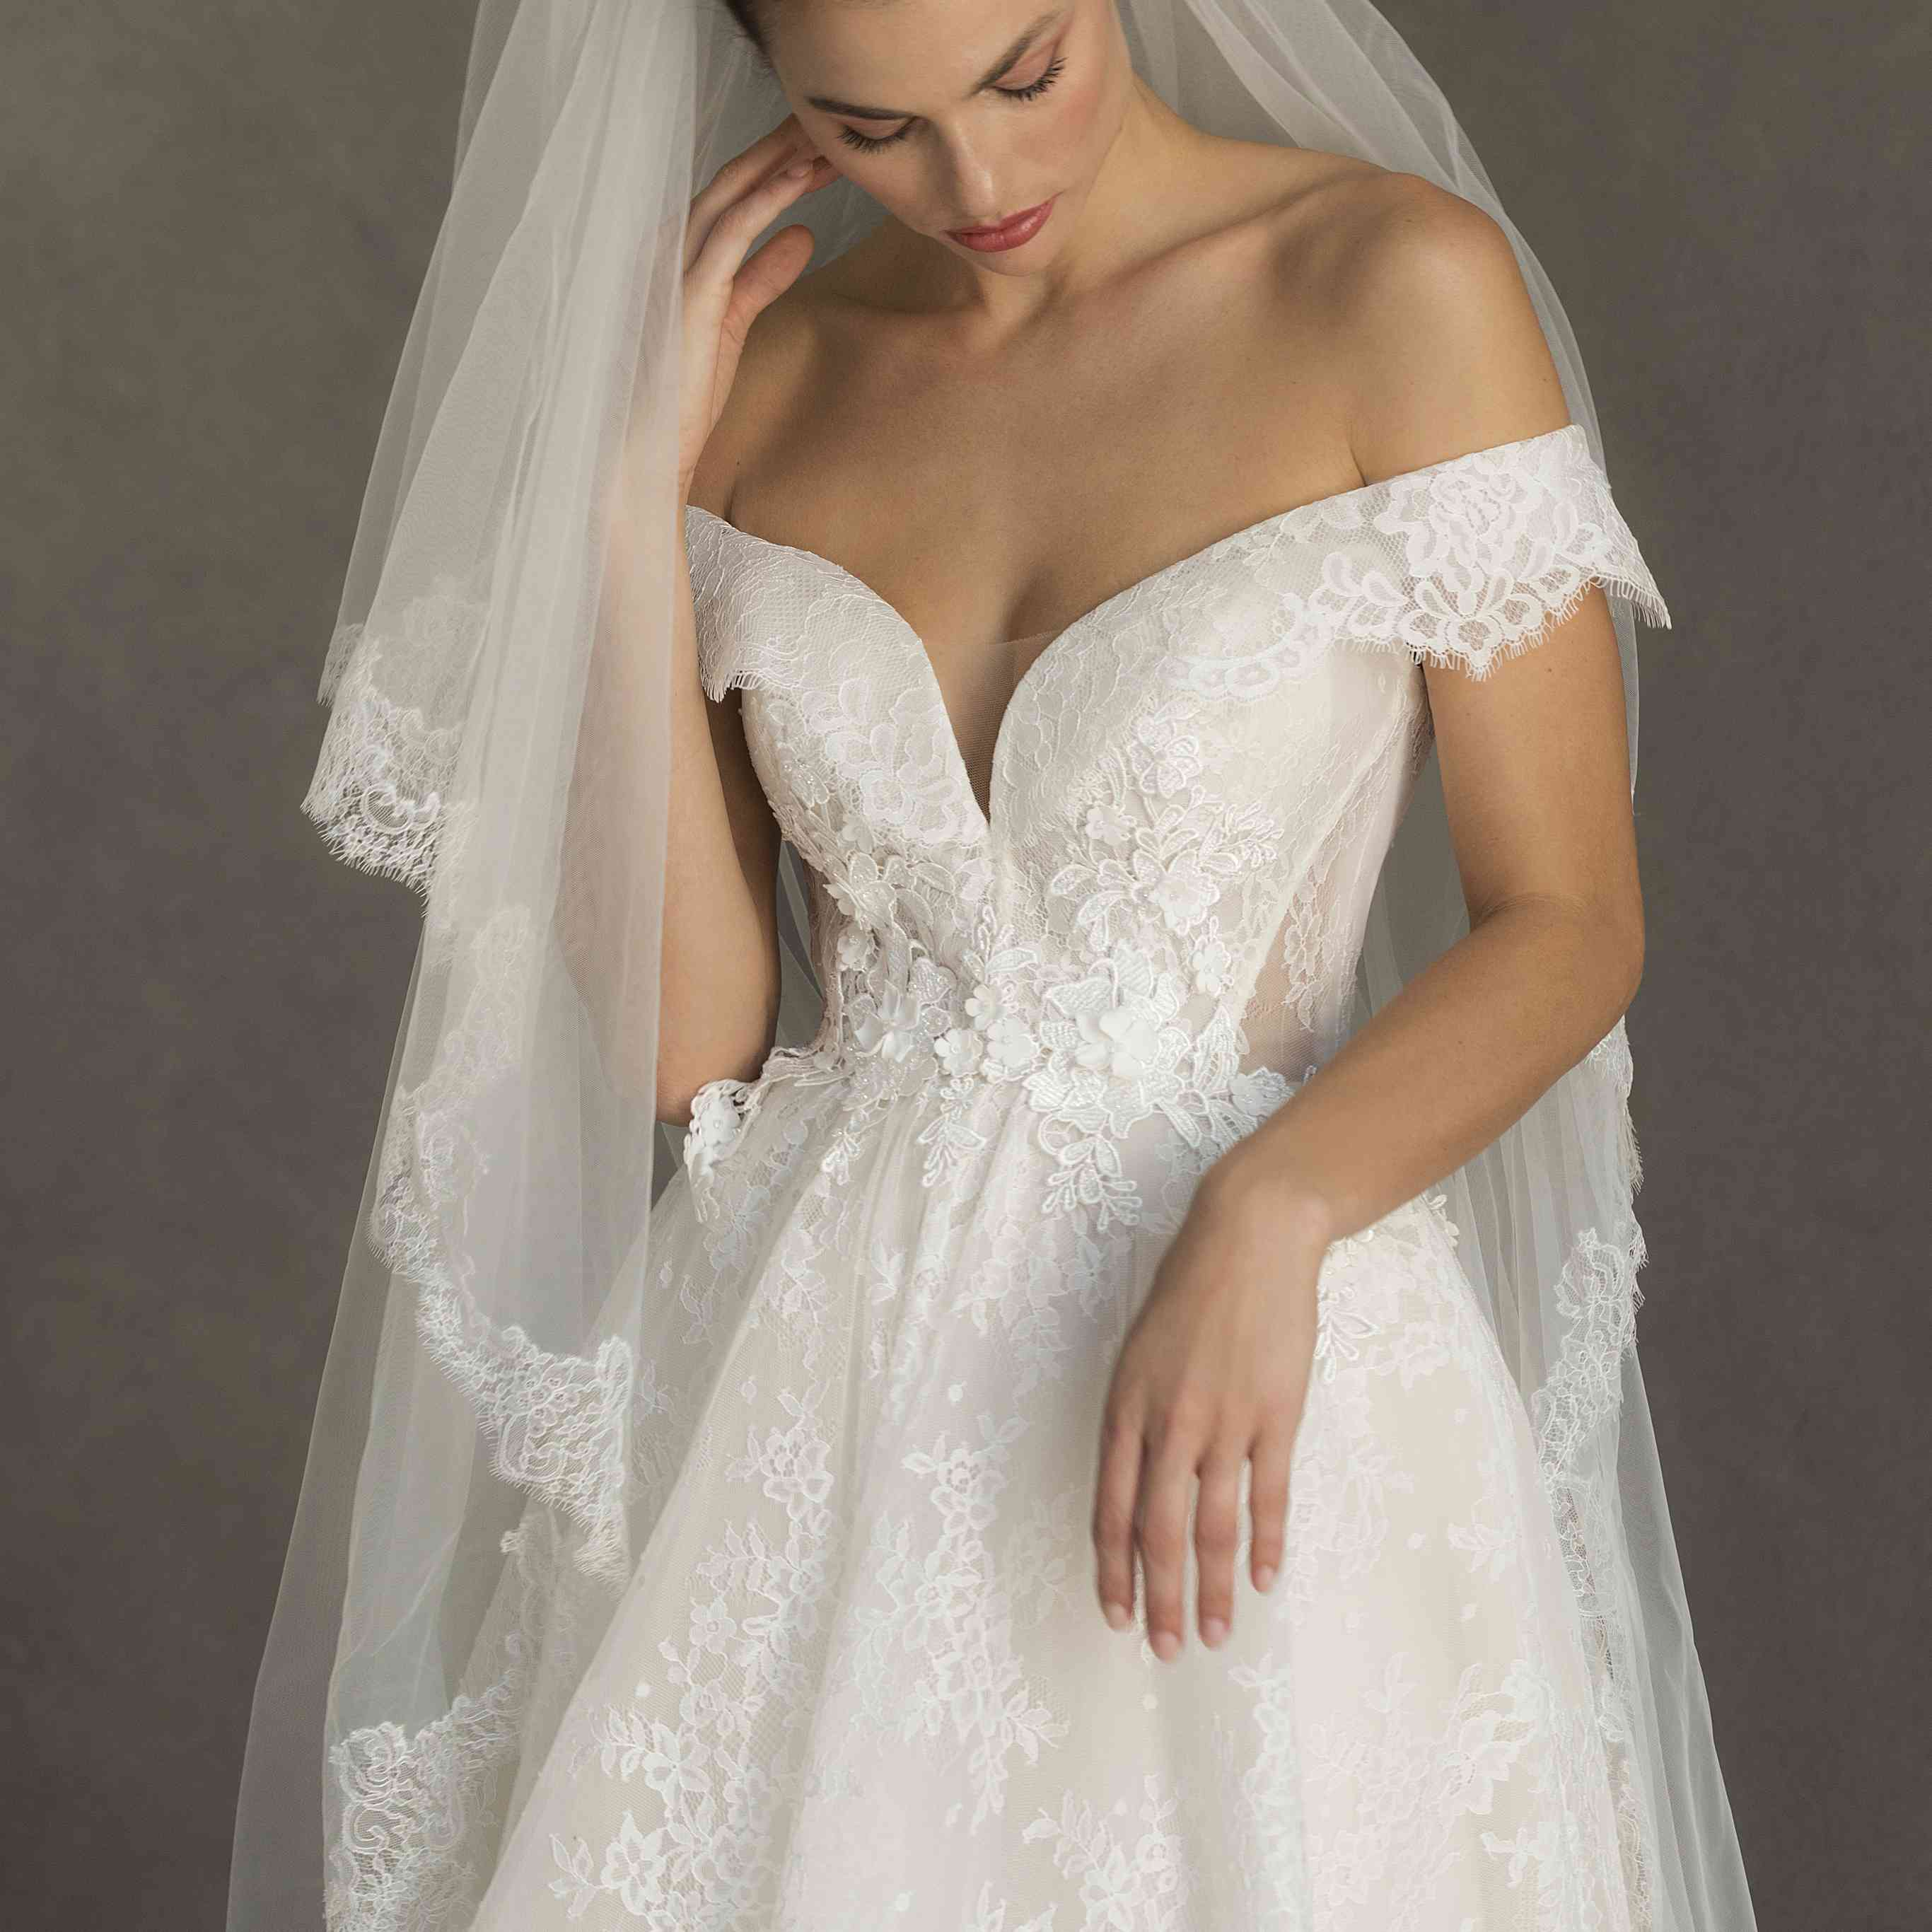 Model in off-the-shoulder lace ballgown with a matching veil